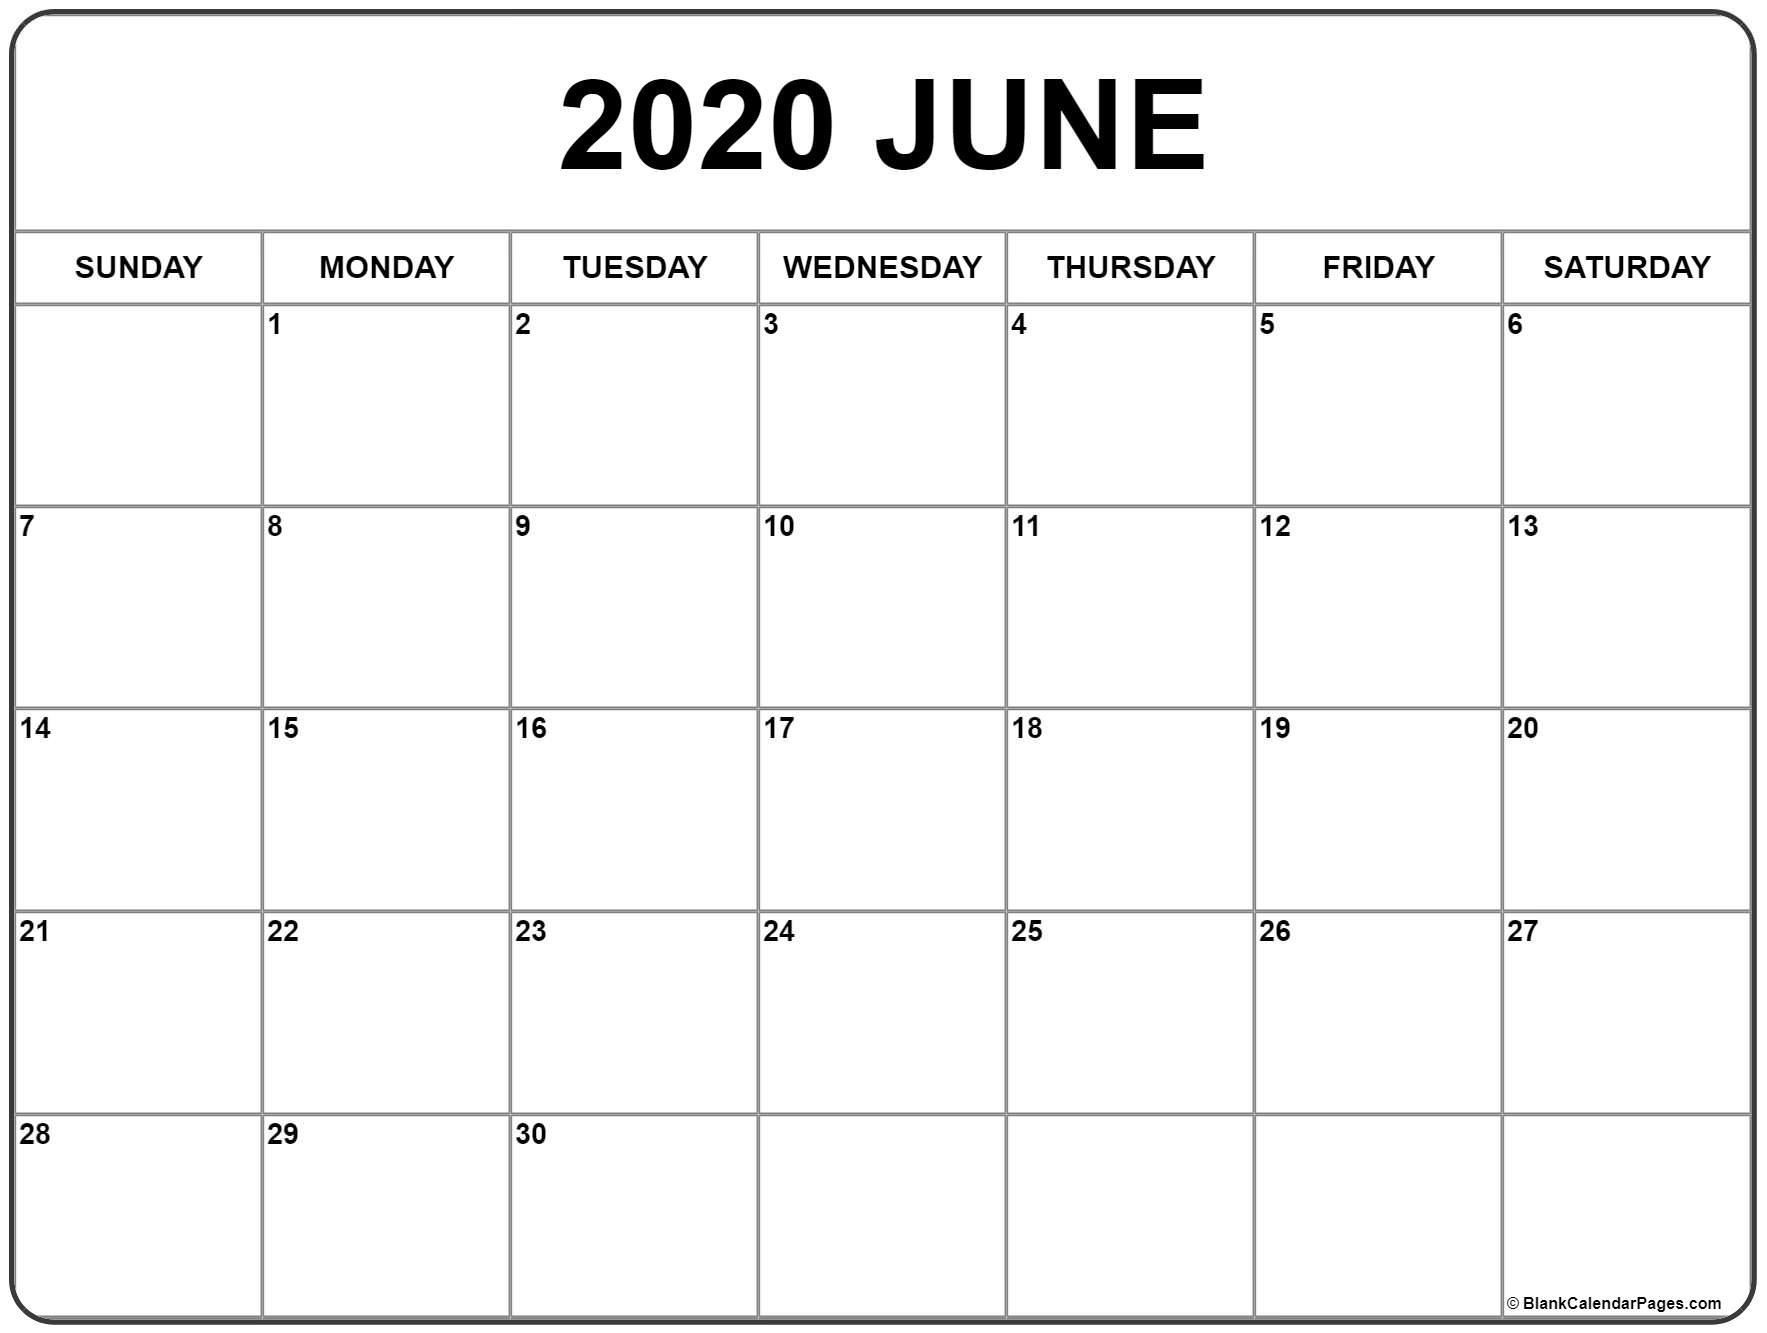 June 2020 Calendar | Free Printable Monthly Calendars-Blank June Calendar Template 2020